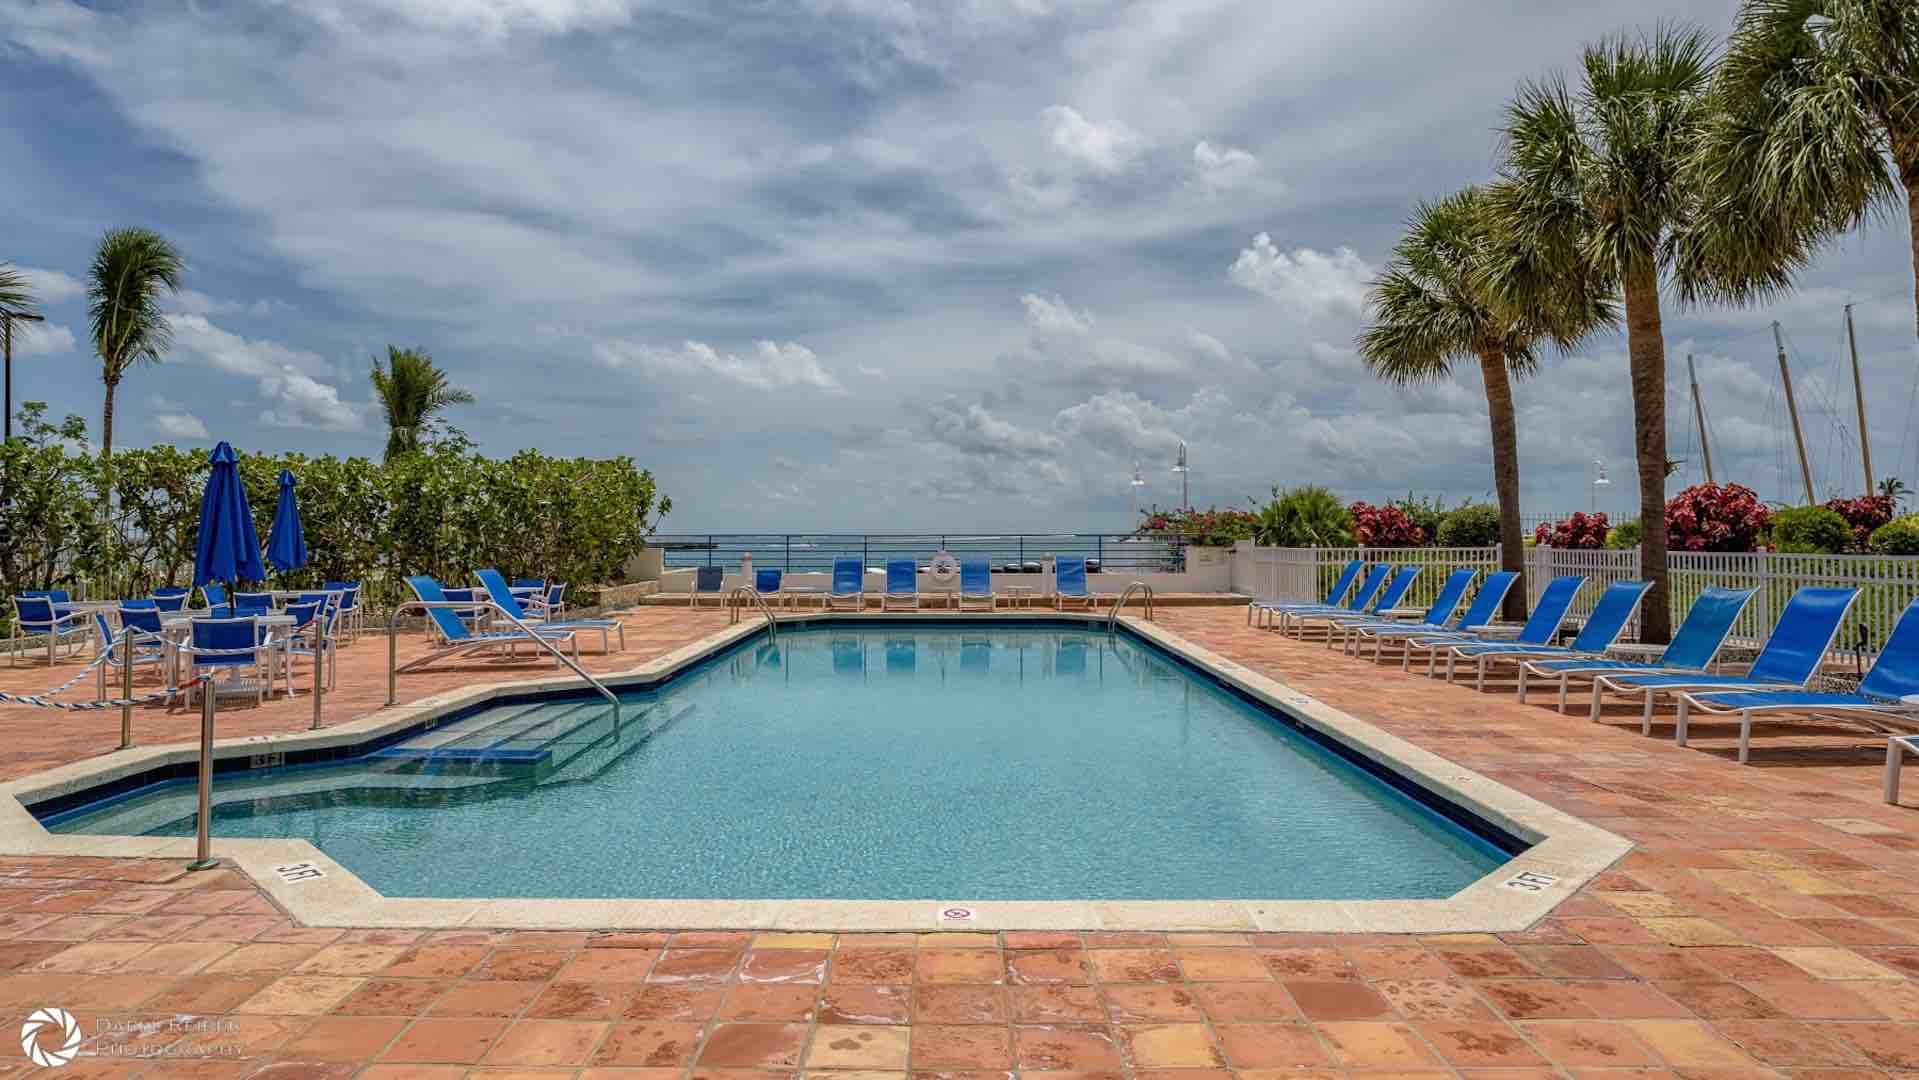 The pool has direct views of the Gulf...